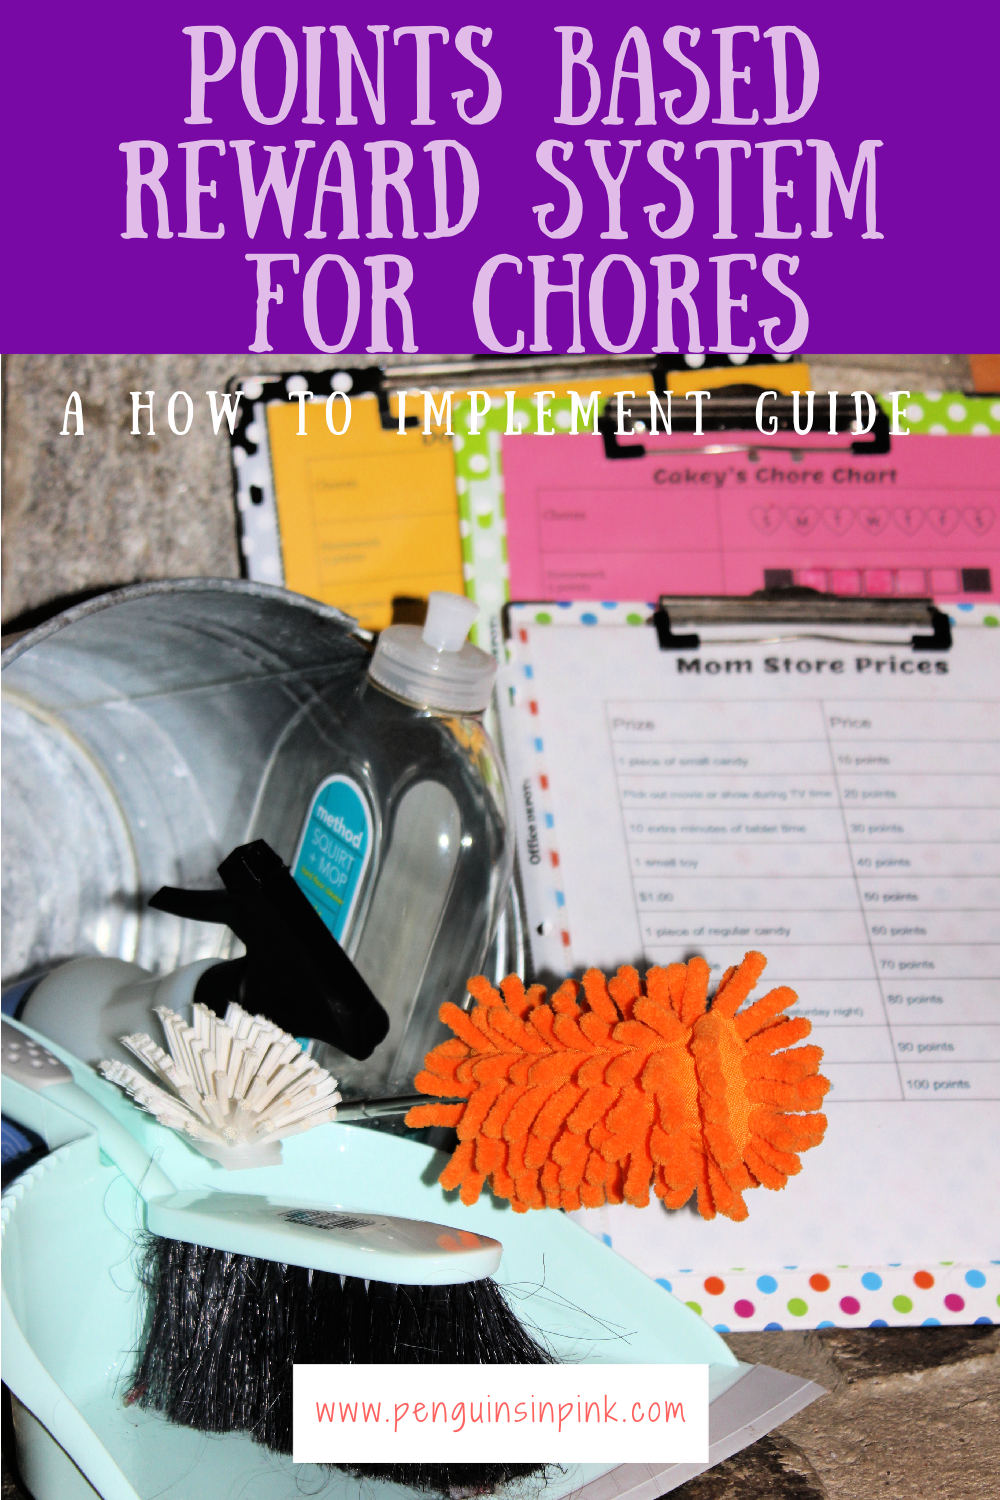 Looking to implement a points based reward system for chores? Learn the 3 things you need in order to implement a points based reward system for chores along with why to use it and how to get started.